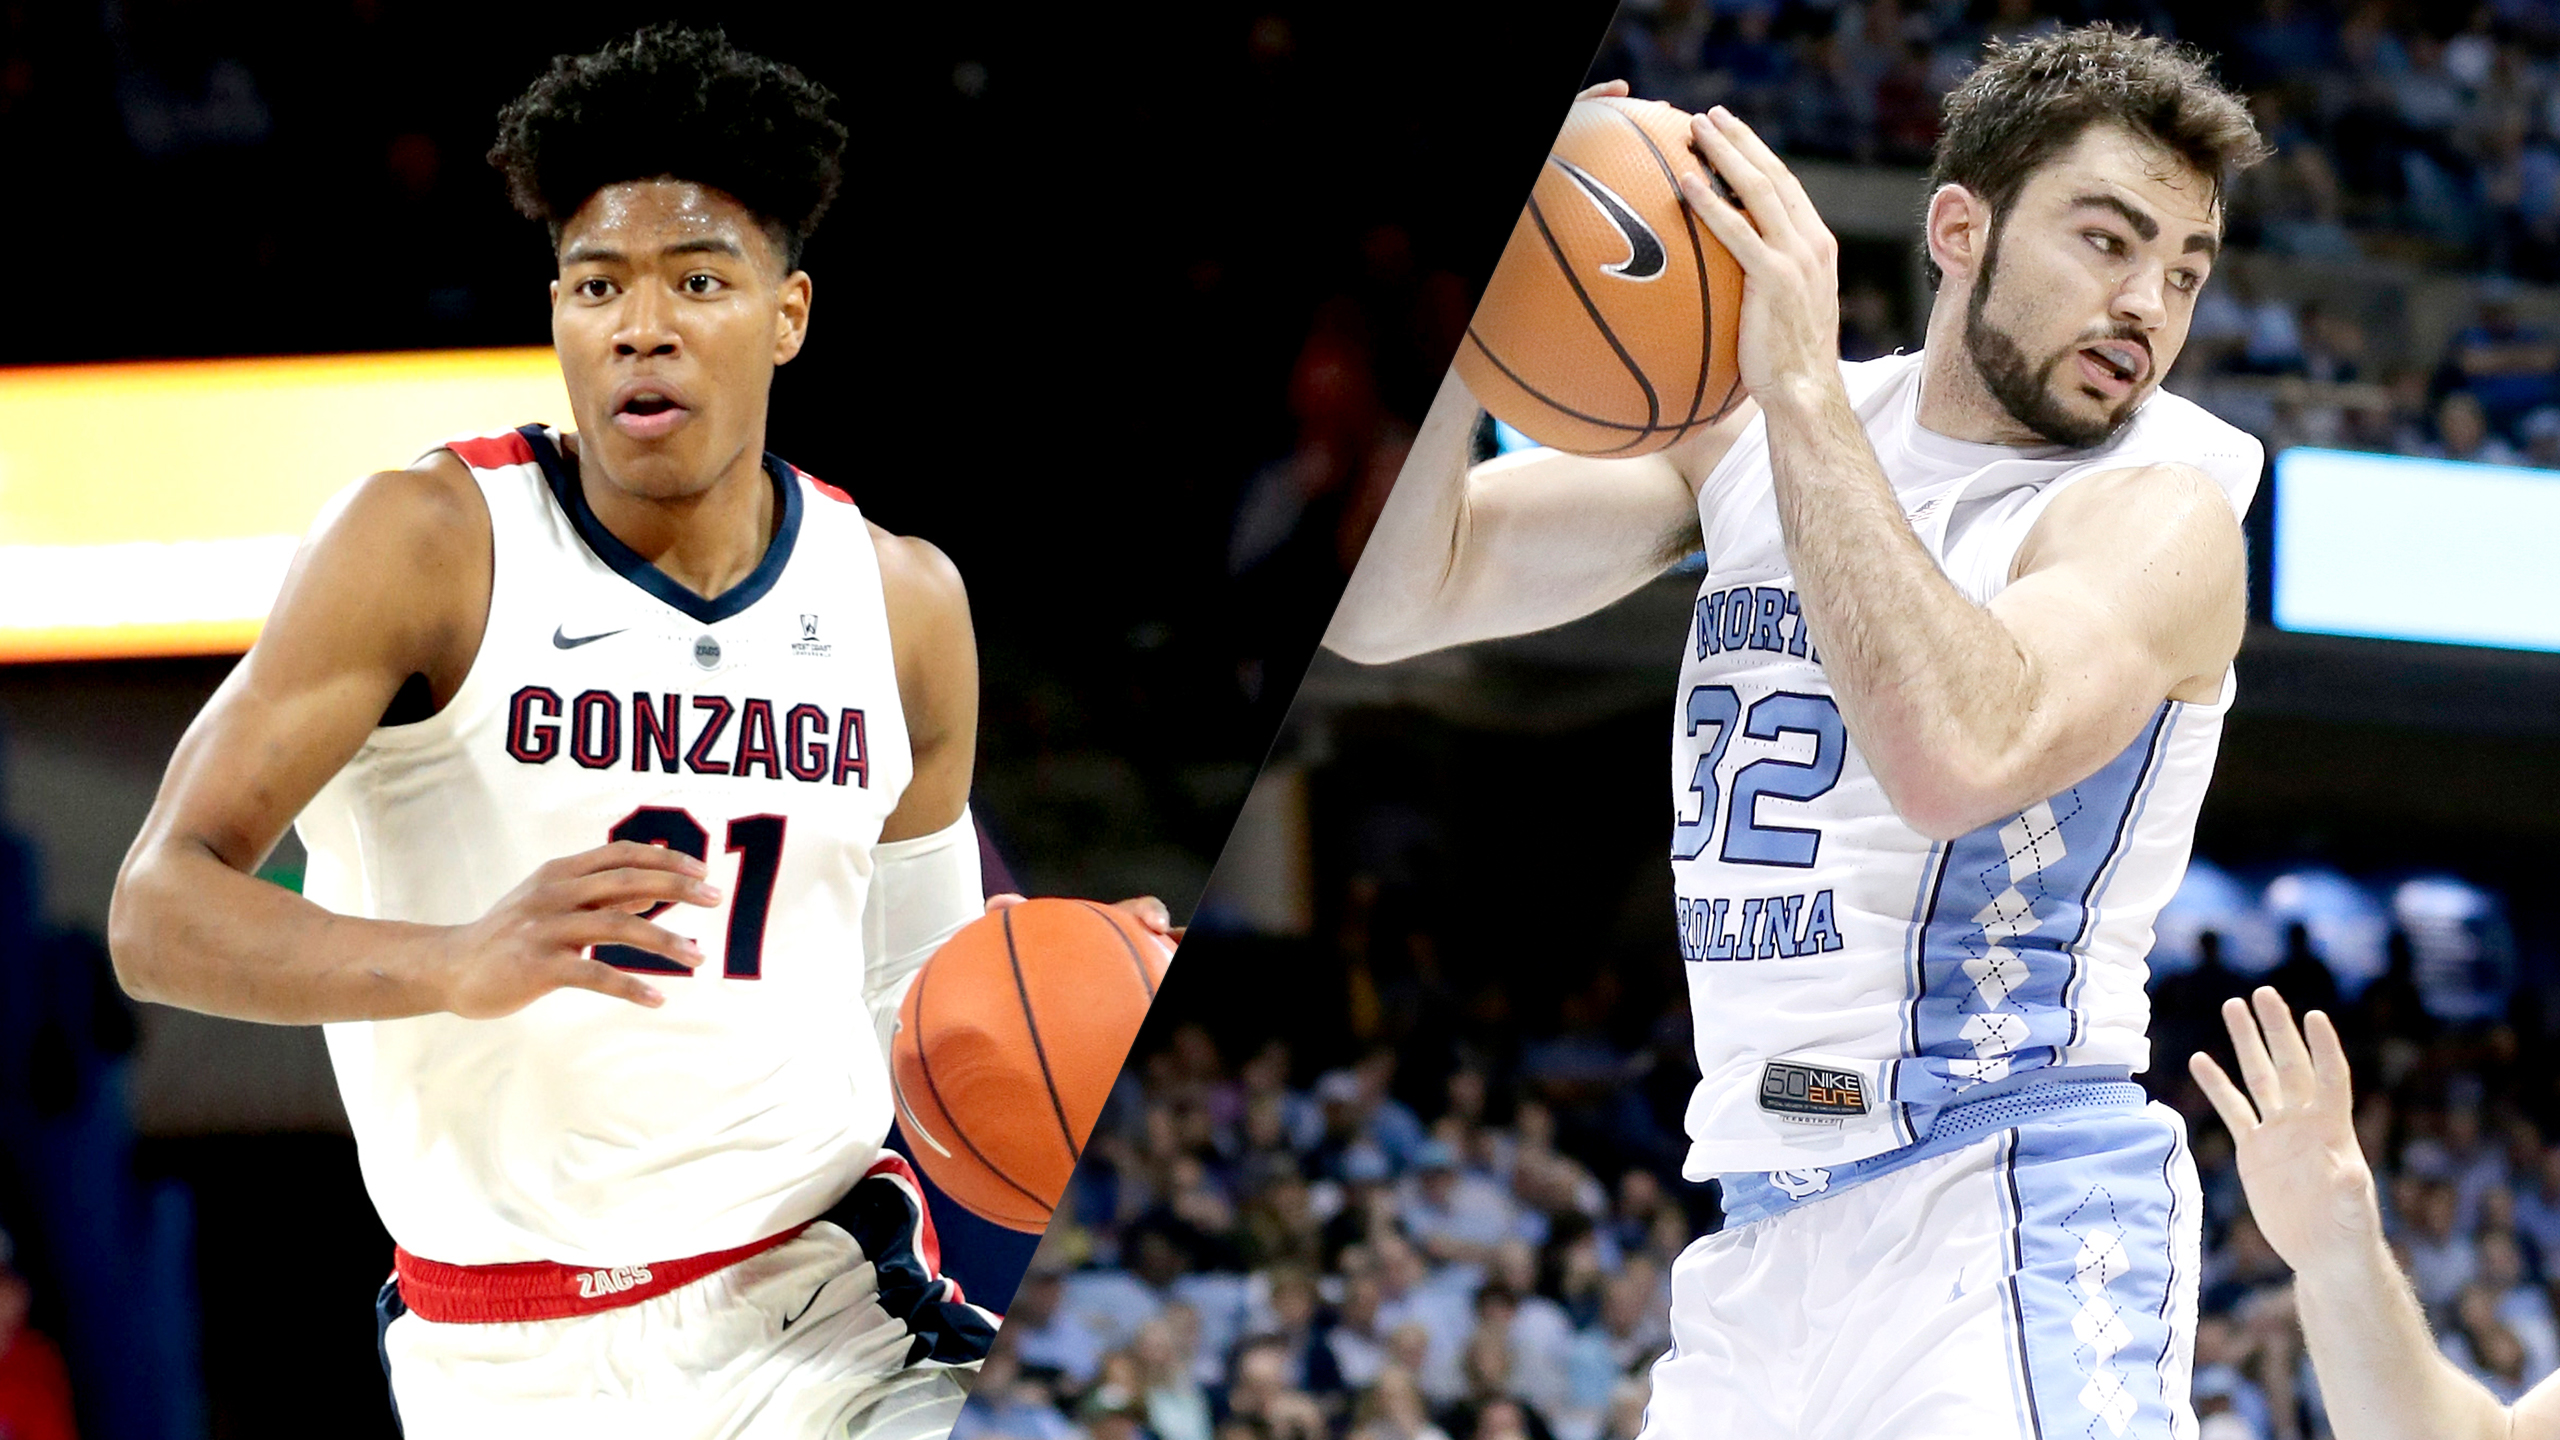 #4 Gonzaga vs. #12 North Carolina (M Basketball)